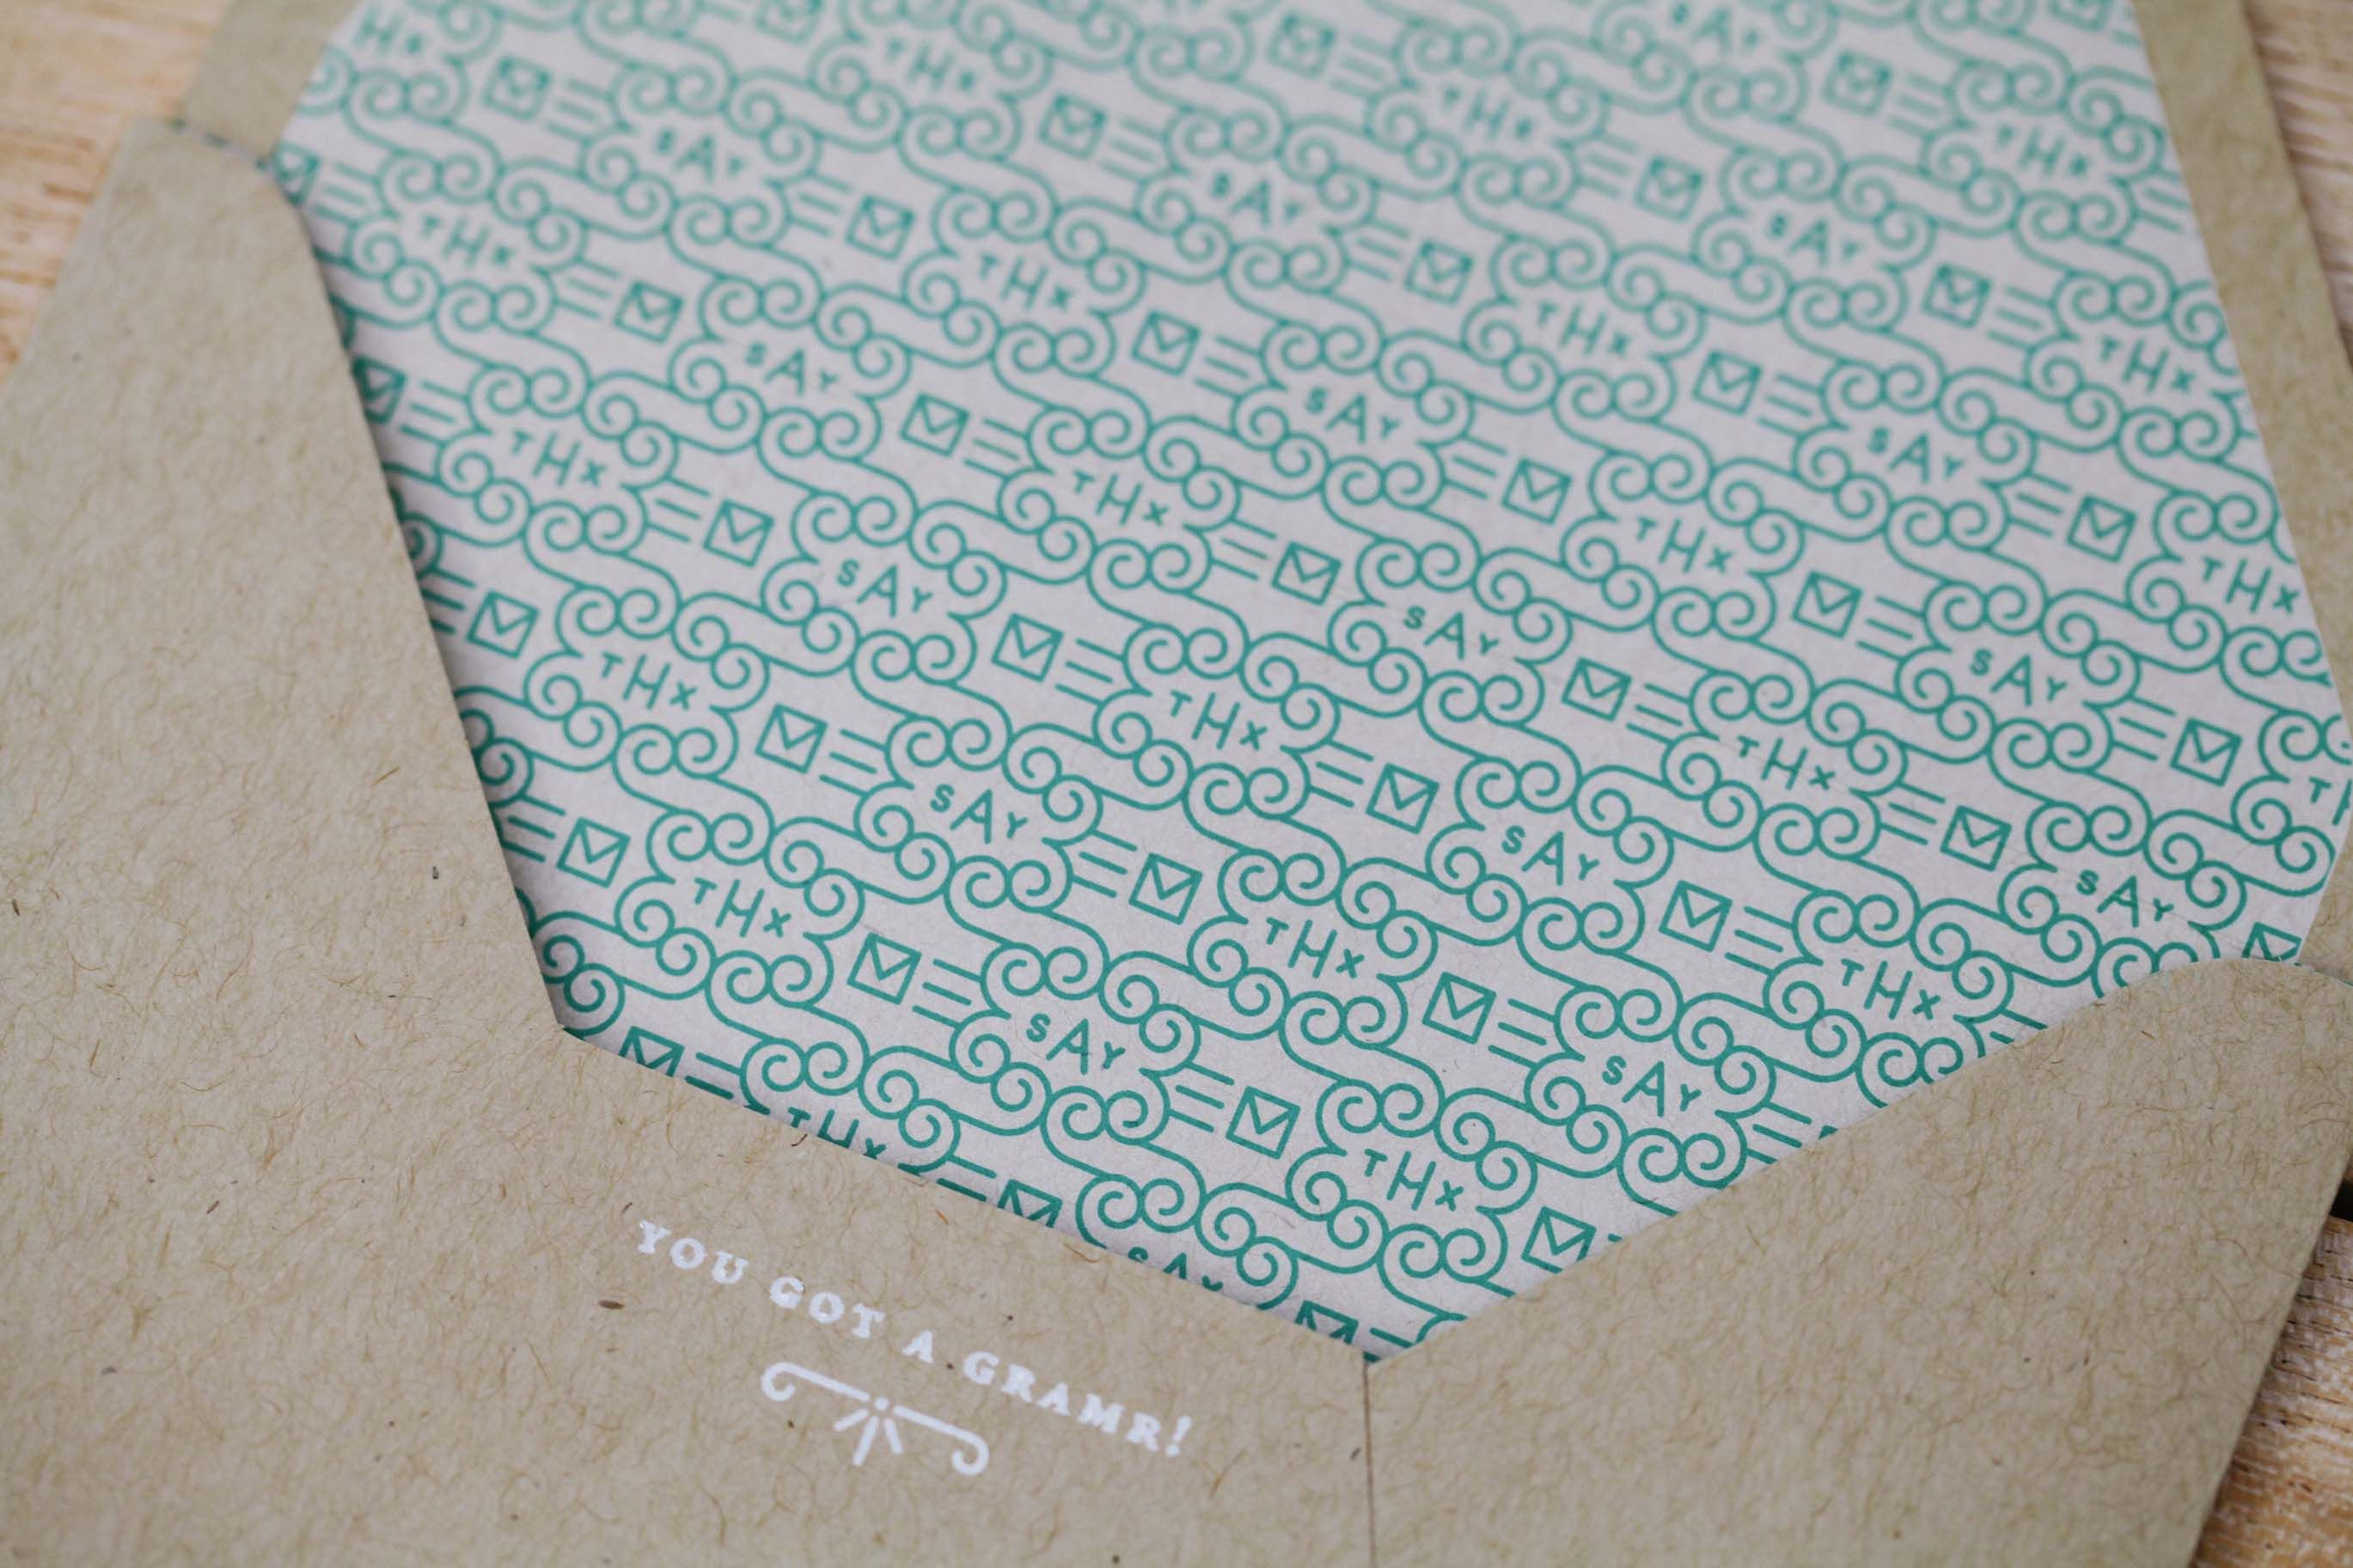 A beautiful card deserves a beautiful envelope... don't you think?